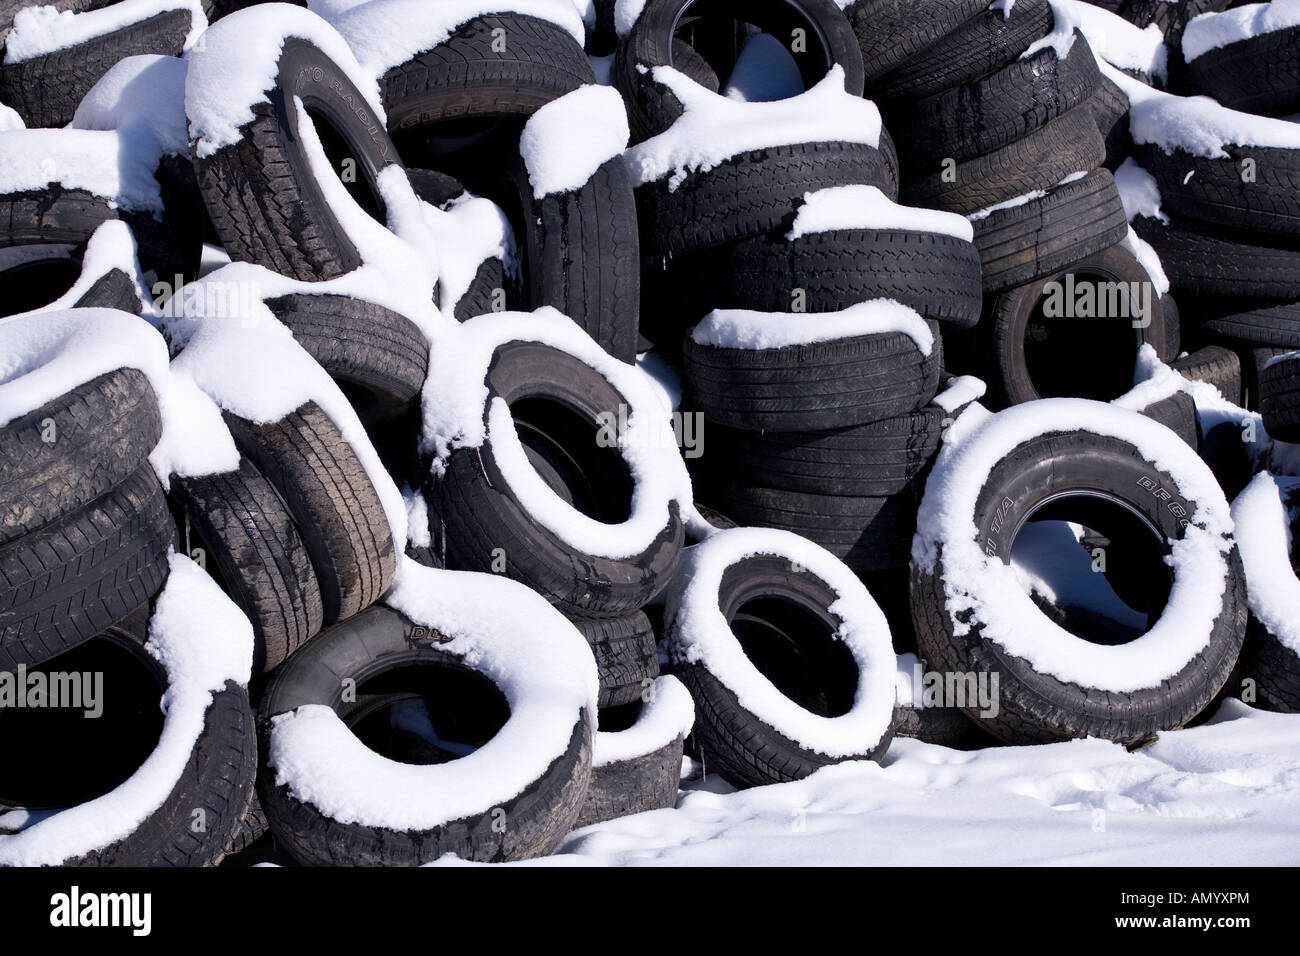 Automobile Car Tires Covered In Snow Stock Photo Royalty Free